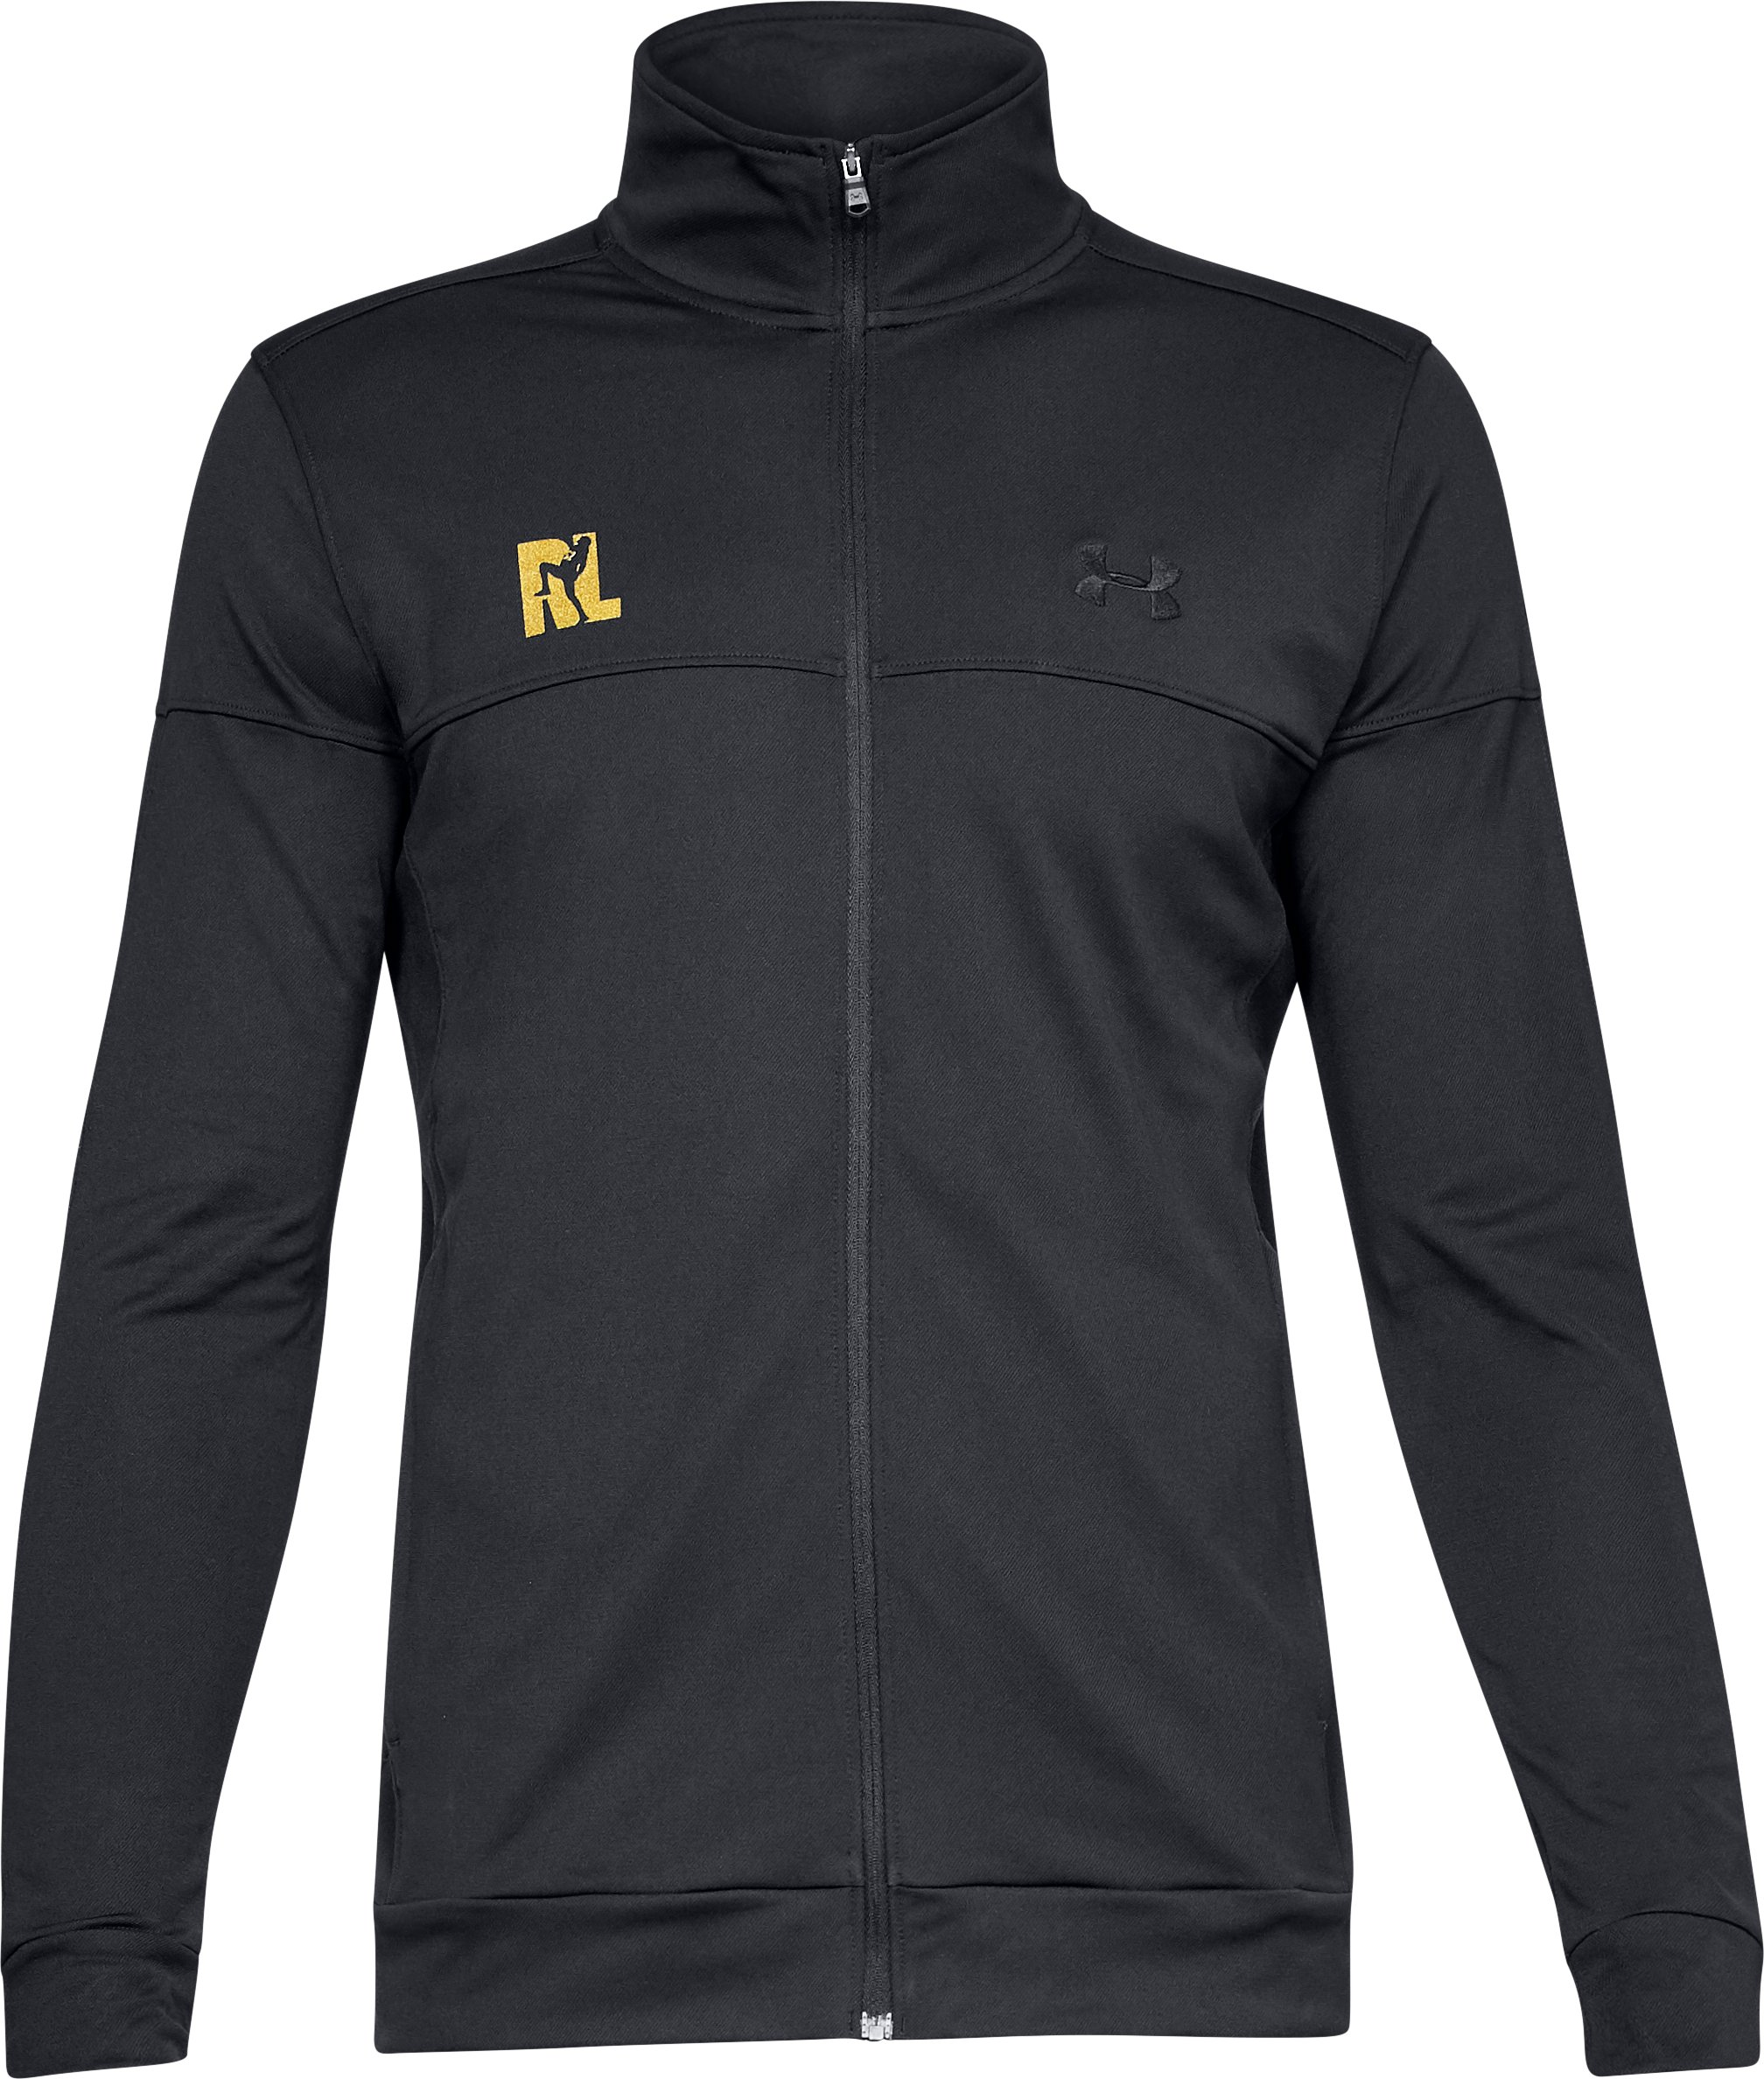 Men's UA Ray Lewis Pique Track Jacket, Black ,